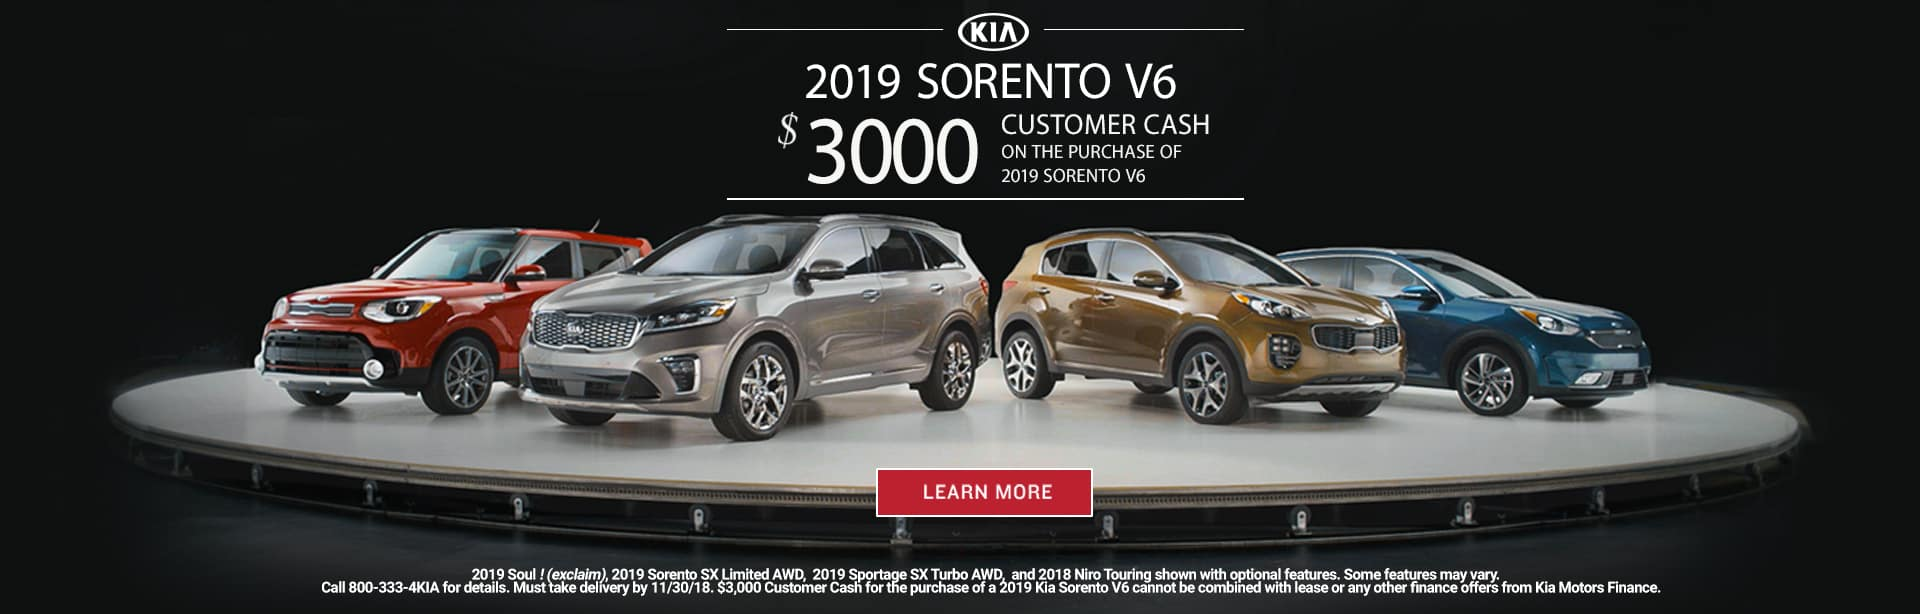 November_Sorento_Customer_Cash_201820_1920x614